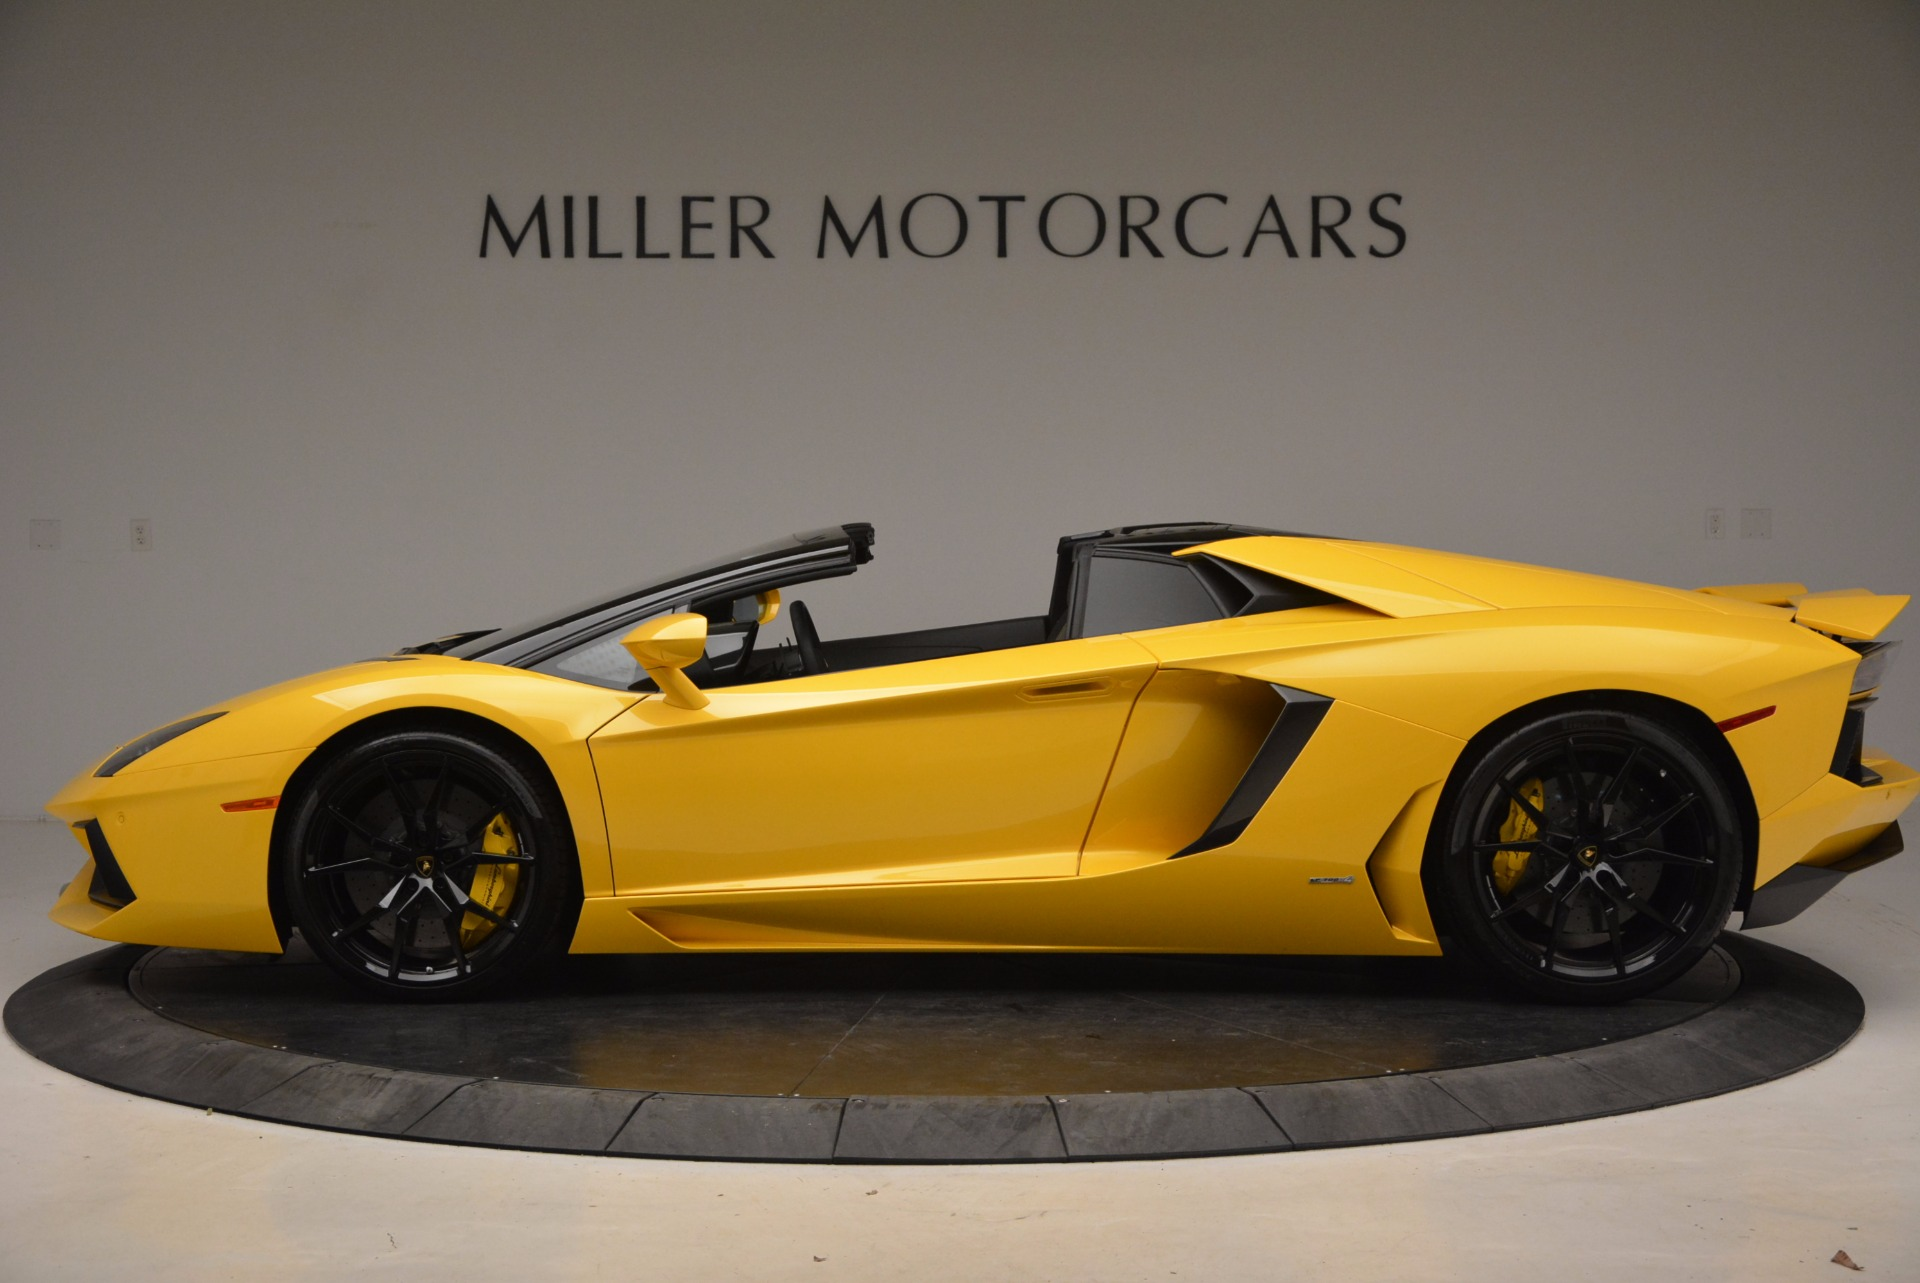 Used 2015 Lamborghini Aventador LP 700-4 Roadster For Sale In Westport, CT 1774_p3